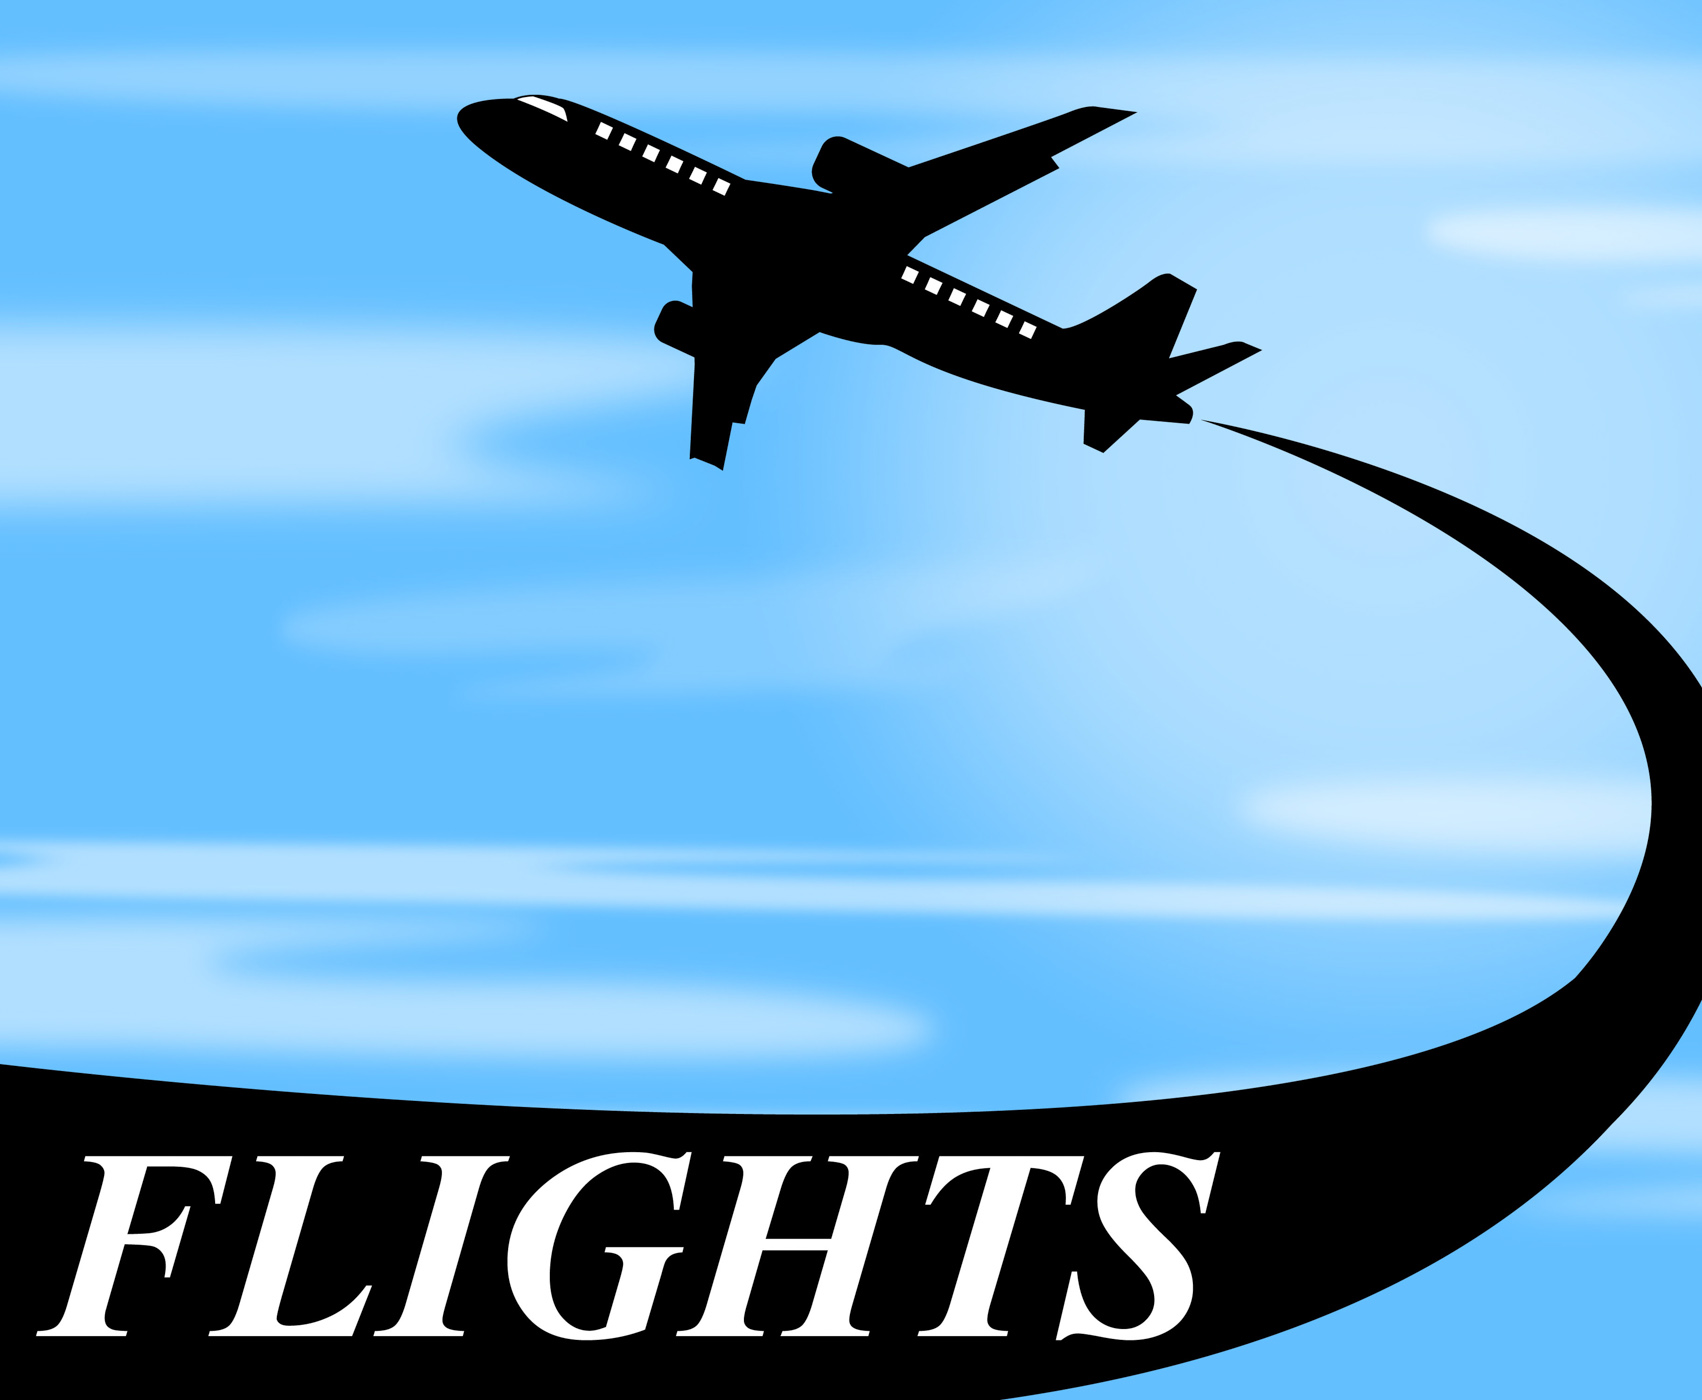 Flights Plane Shows Go On Leave And Air, Aeroplane, Jet, Vacationing, Vacational, HQ Photo